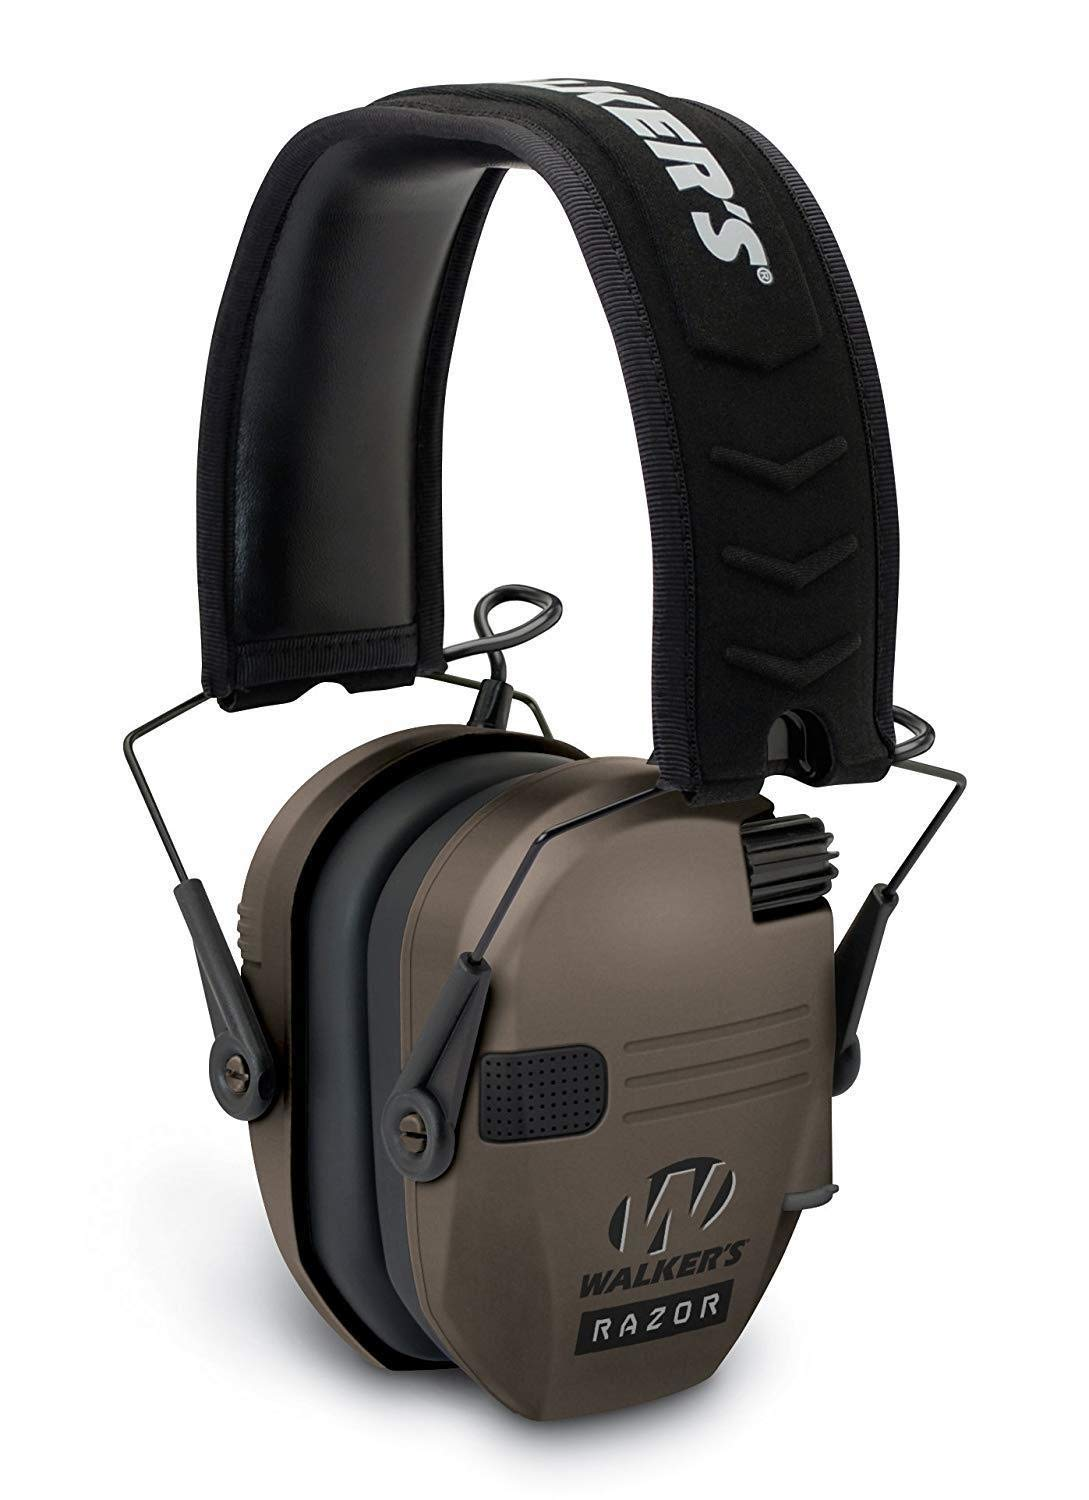 Walkers Razor Slim Electronic Shooting Hearing Protection Muff (Flat Dark Earth) with Protective Case by Walkers (Image #4)